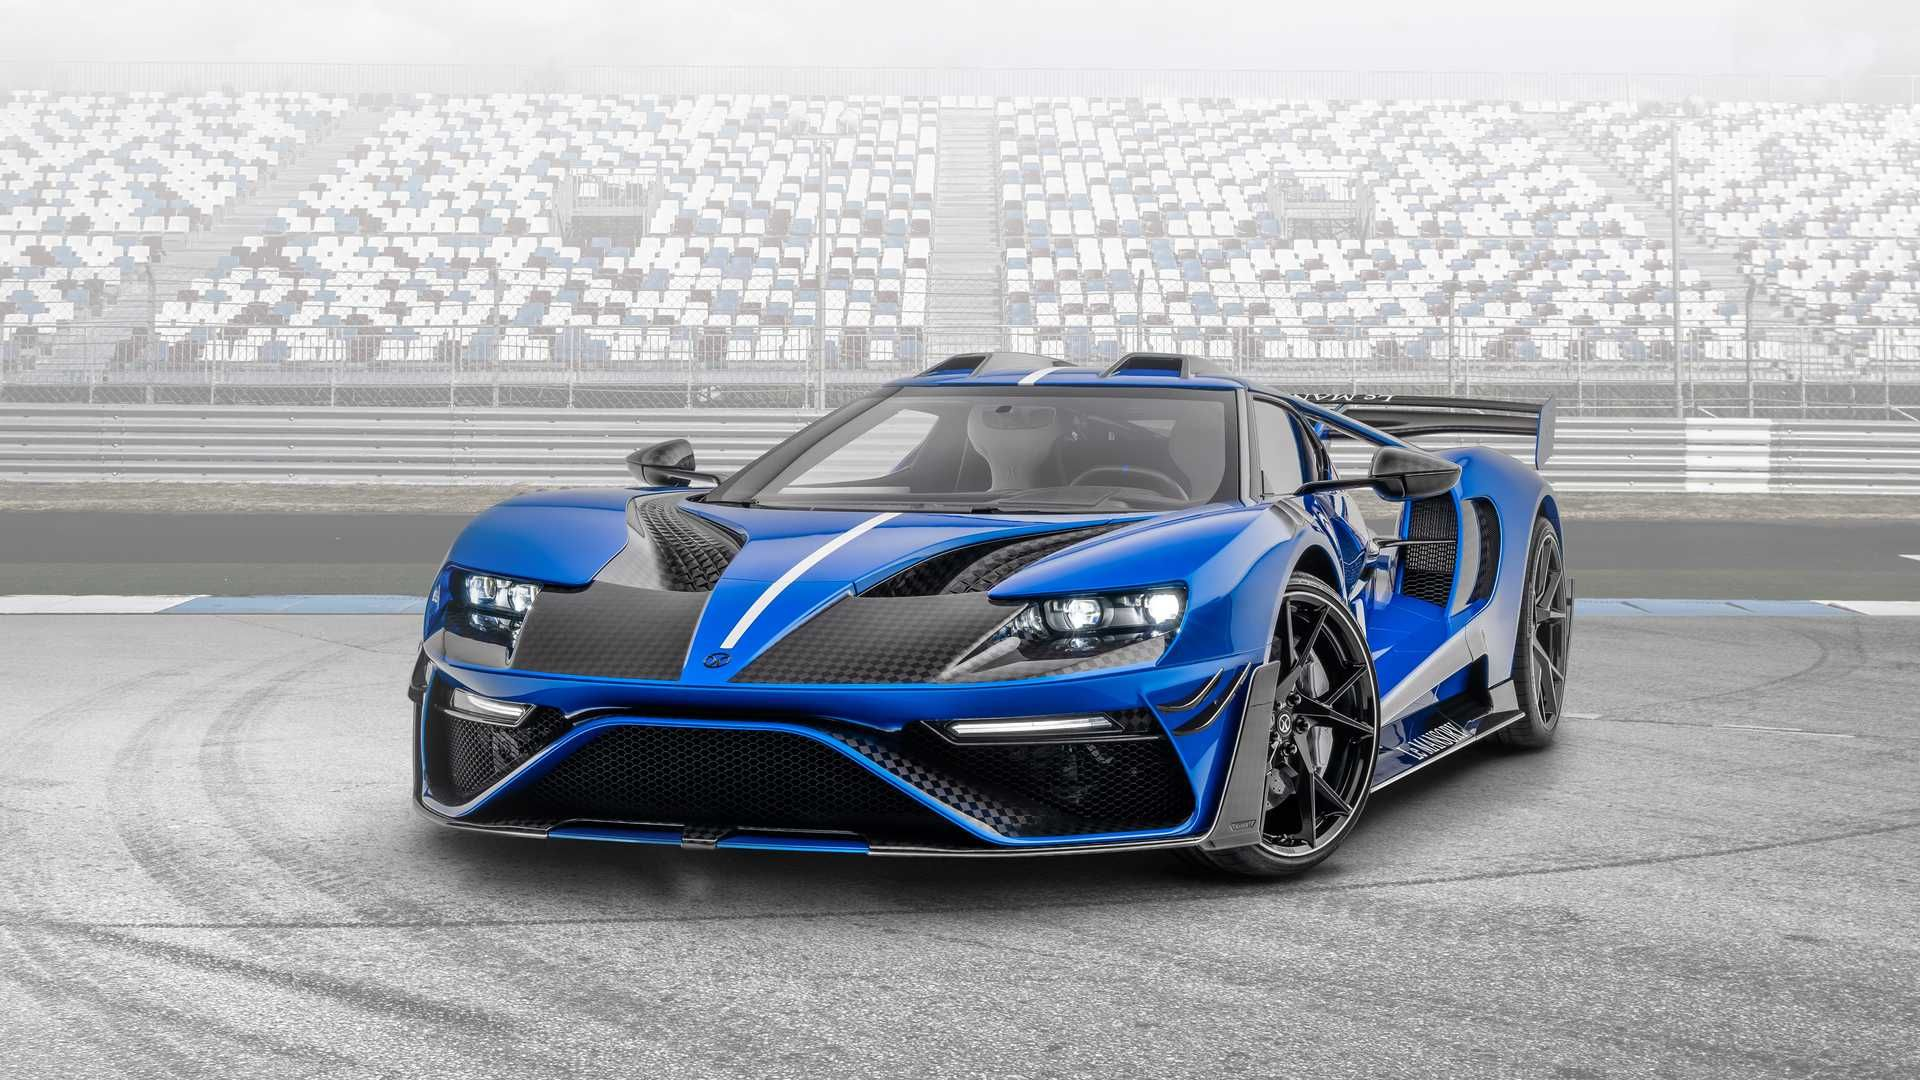 Ayto Einai To Ford Gt Le Mansory Twn 700 Ippwn Automotors Gr In